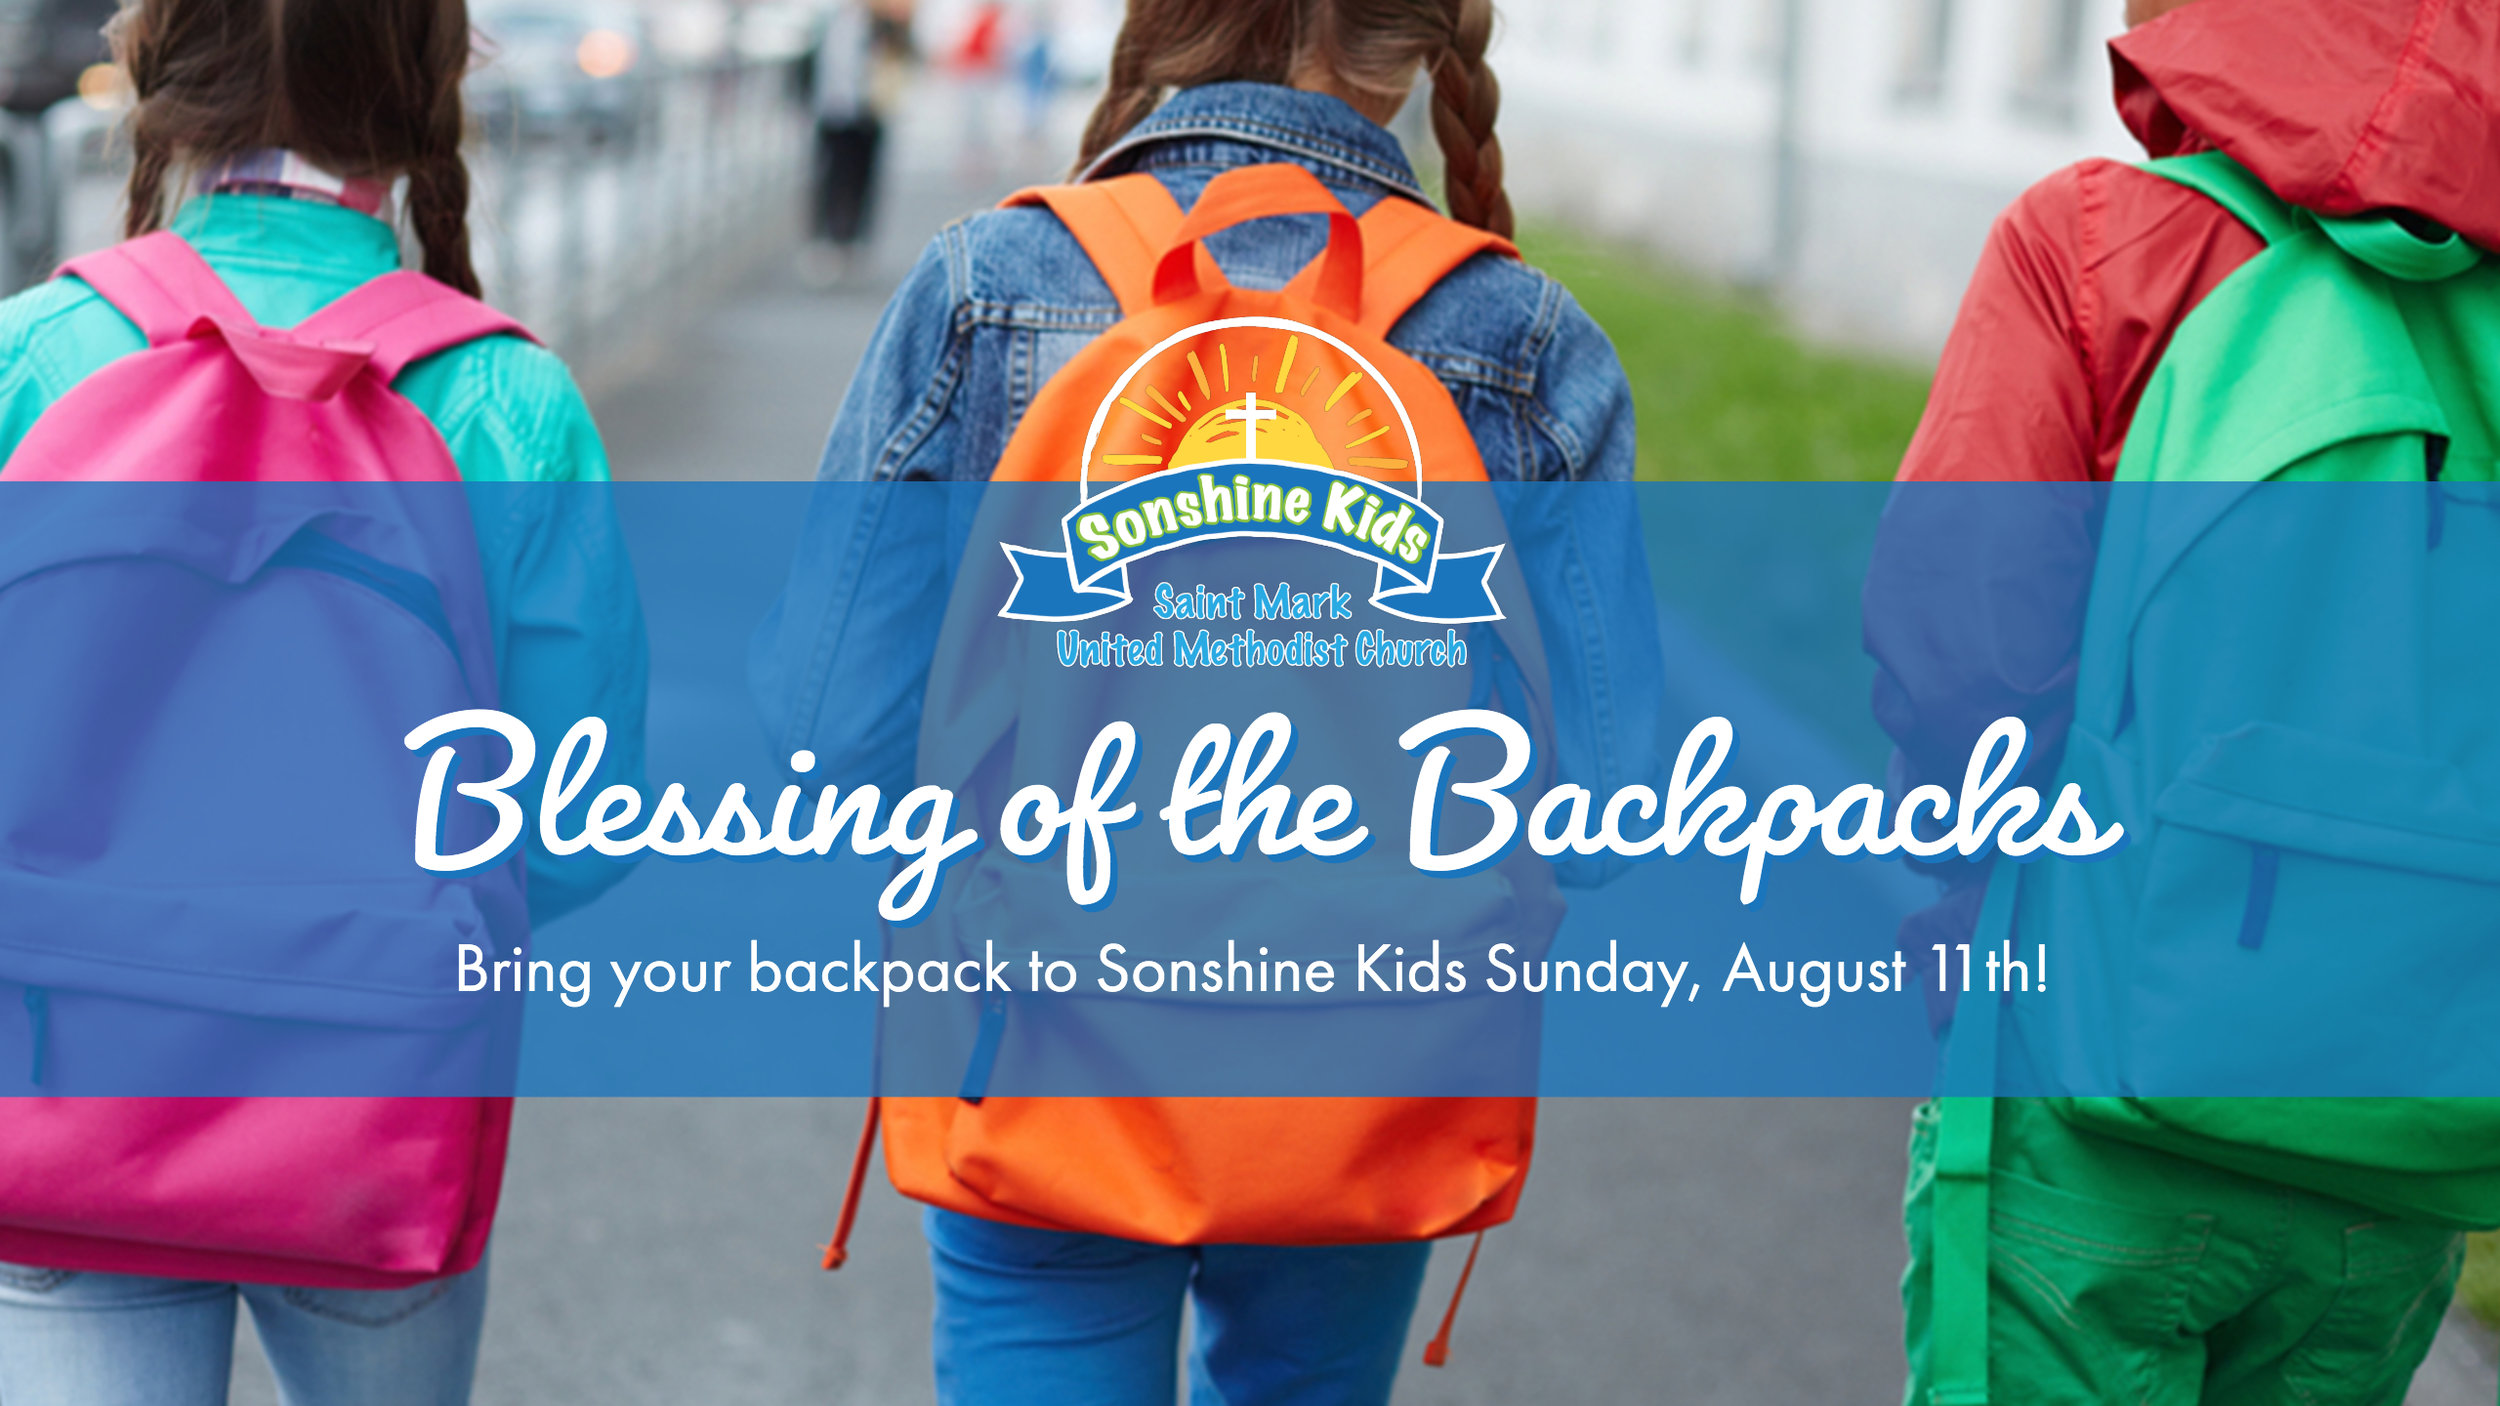 backpacks sonshine kids.jpg